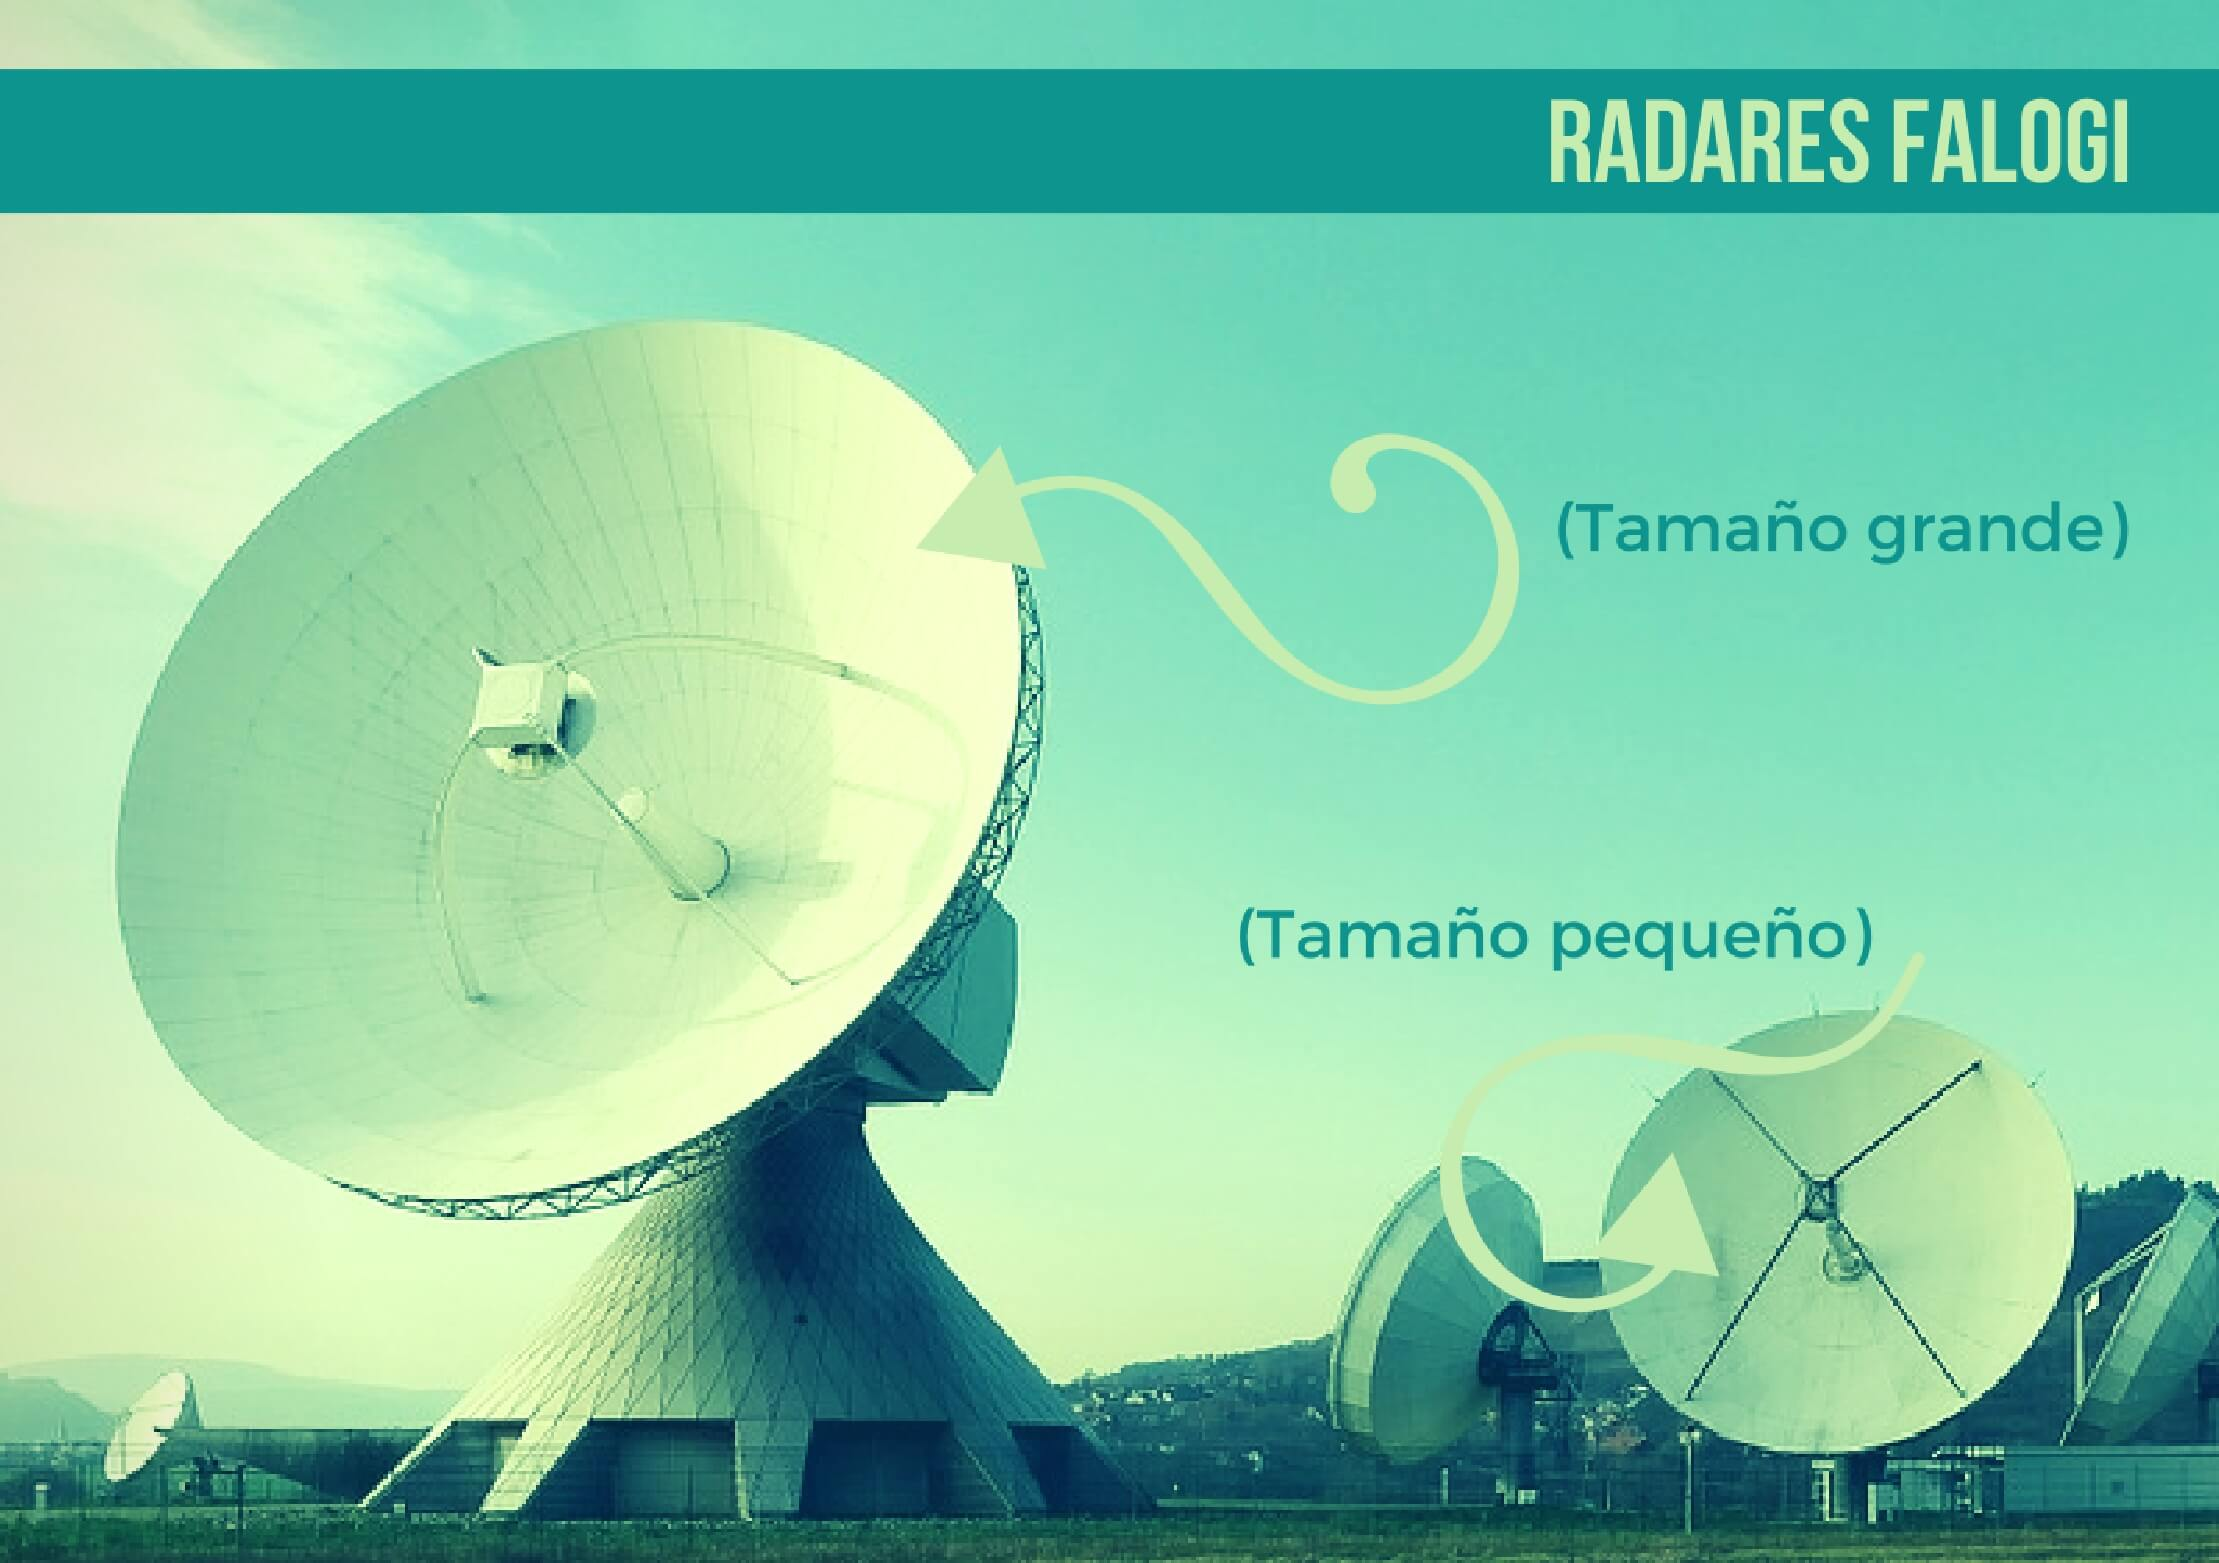 falacias logicas radar